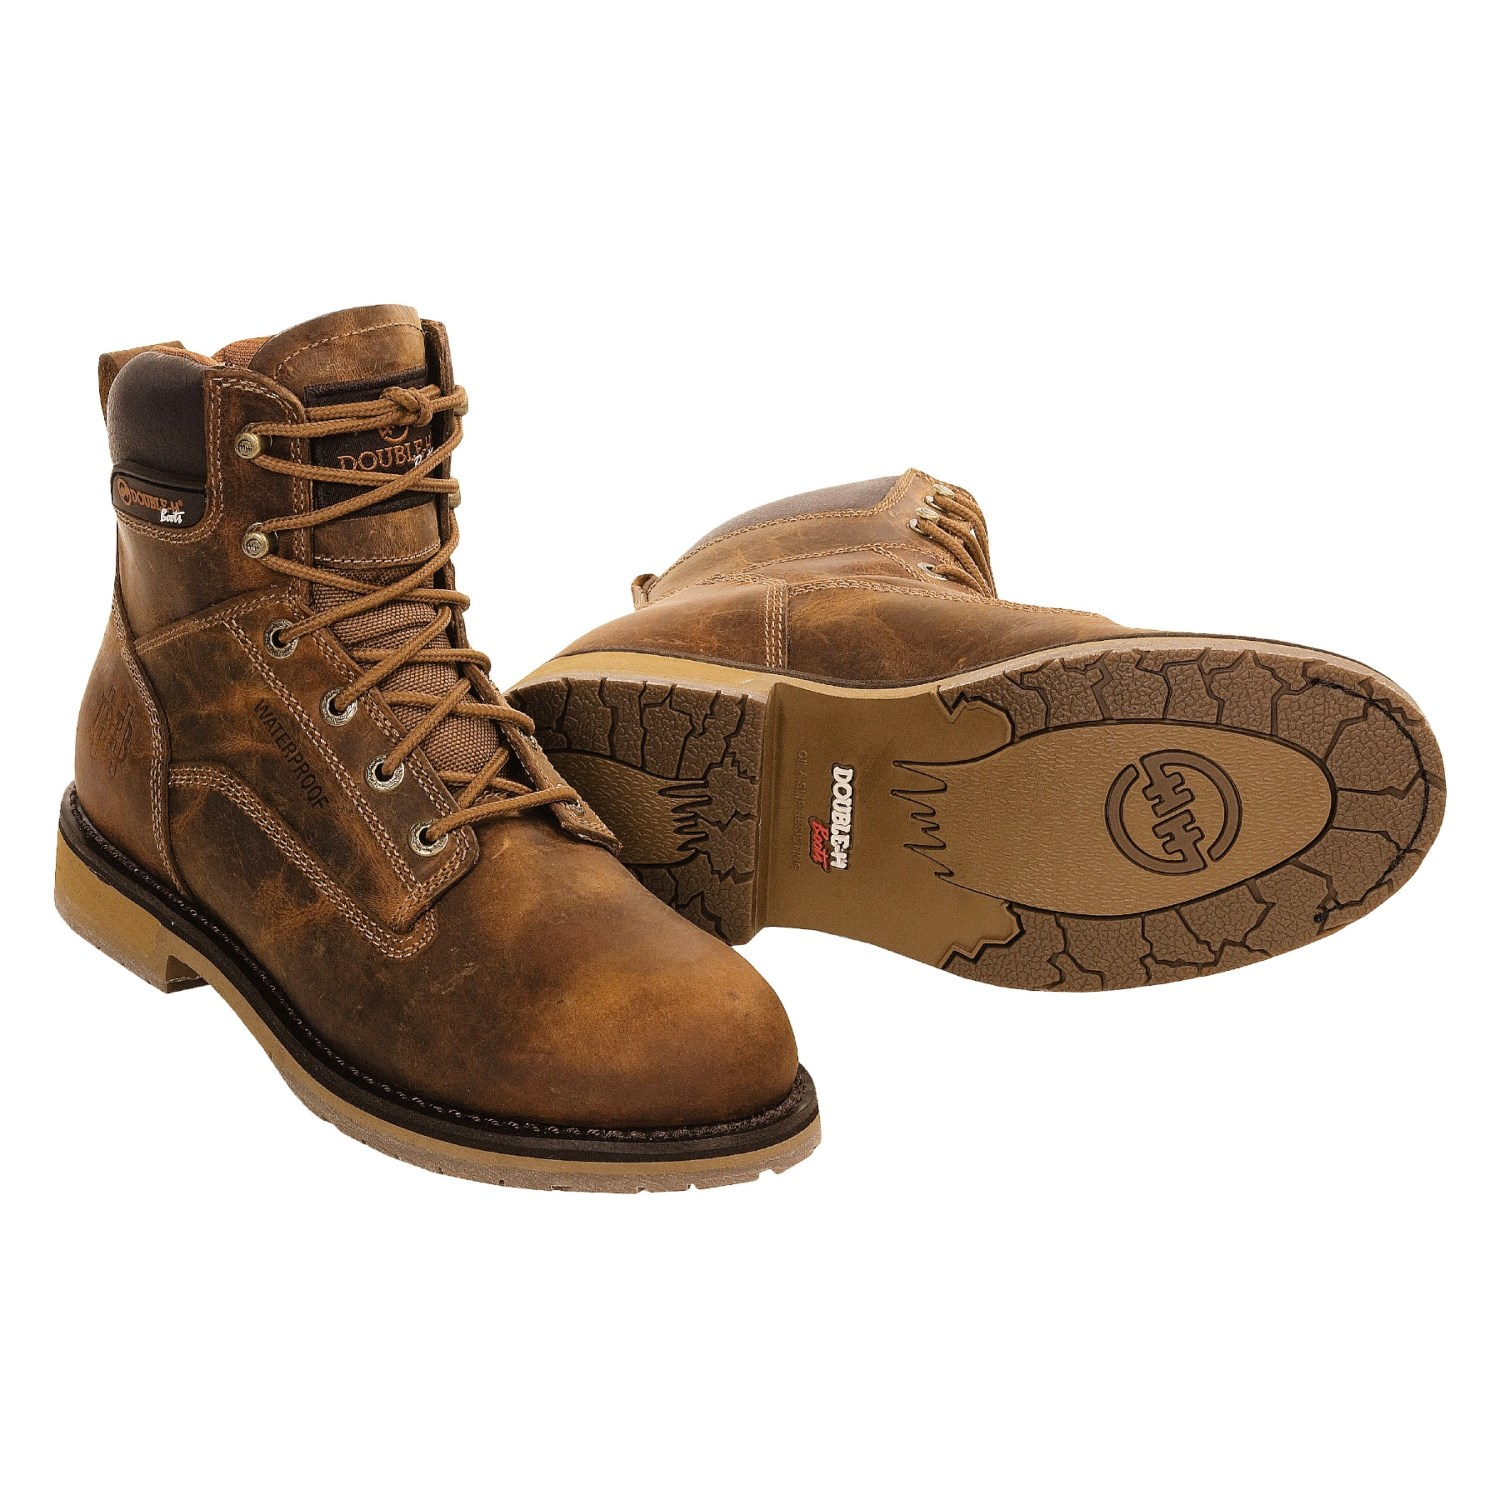 Leather Work Boots For Men - Yu Boots